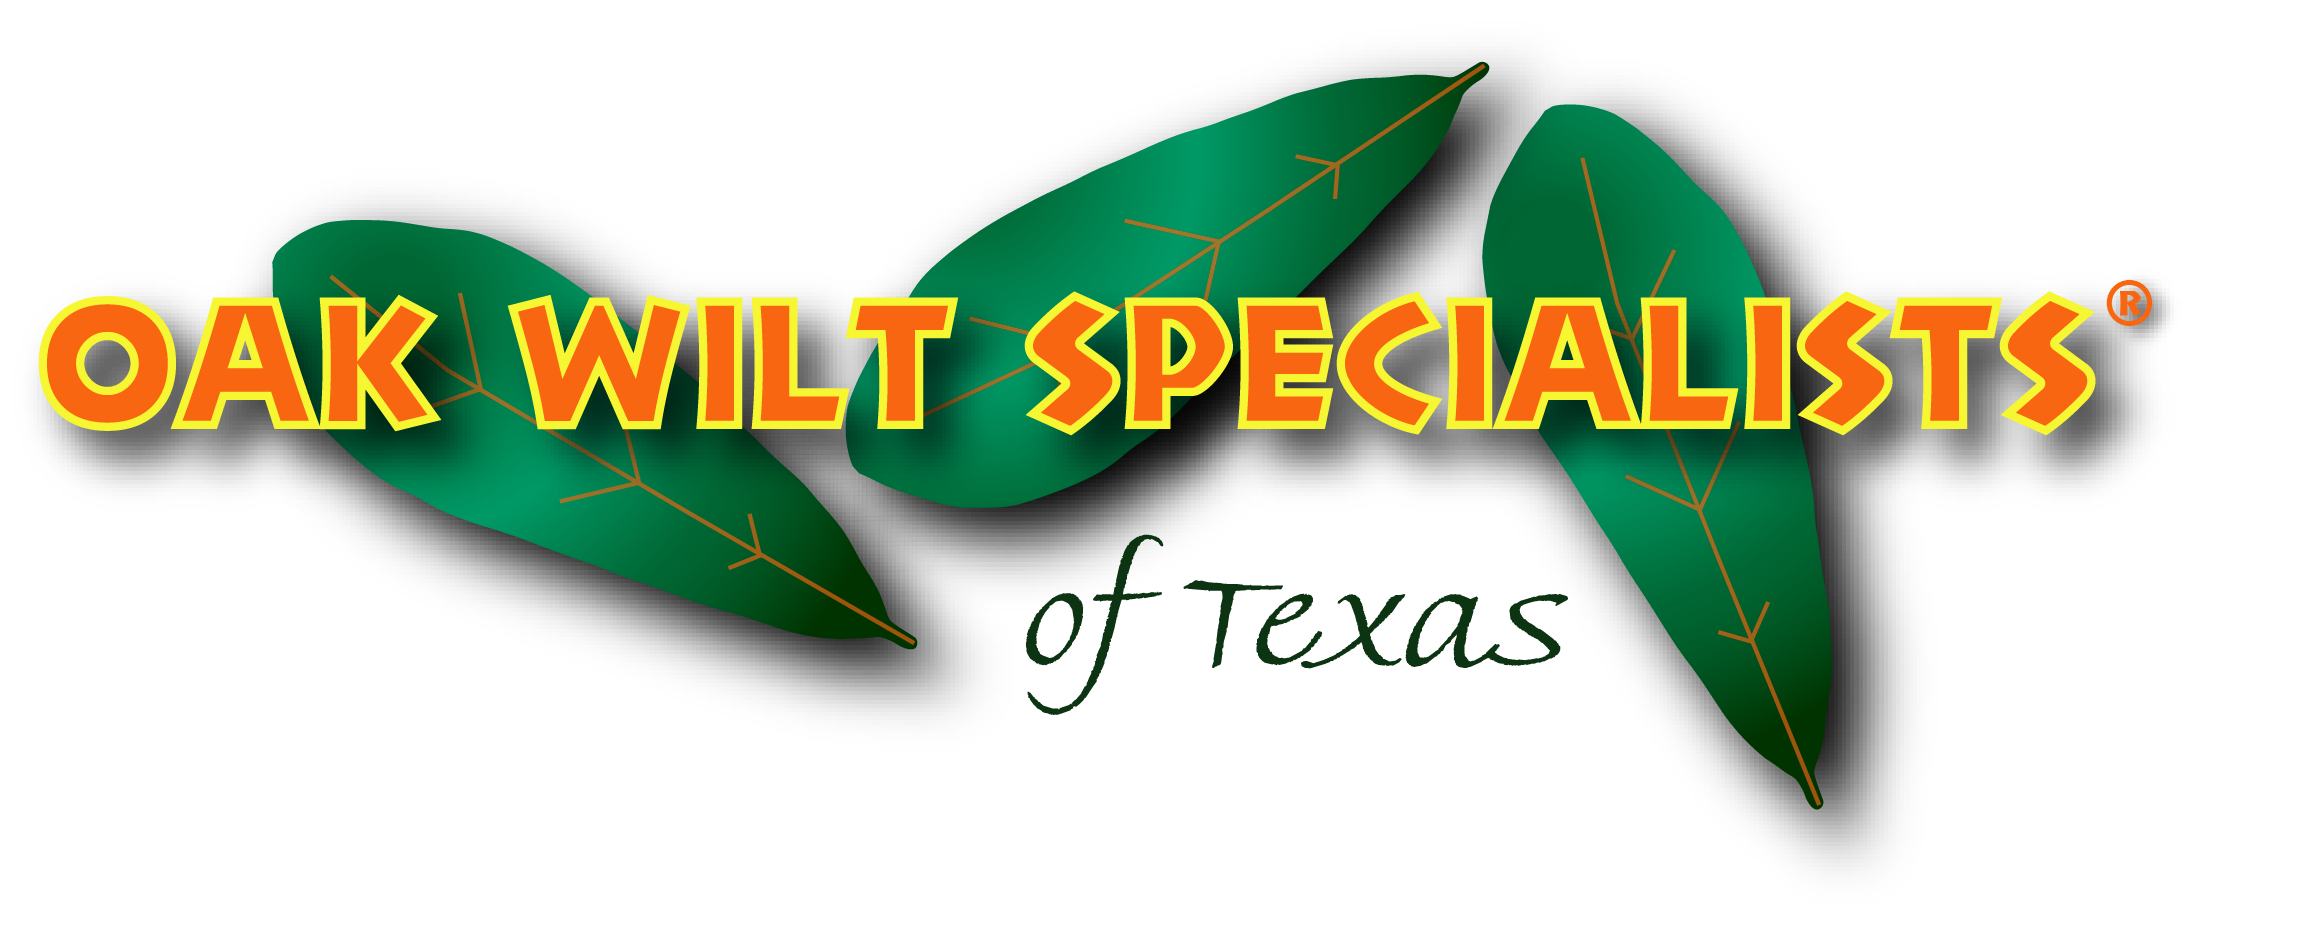 Oak Wilt Specialists of Texas log